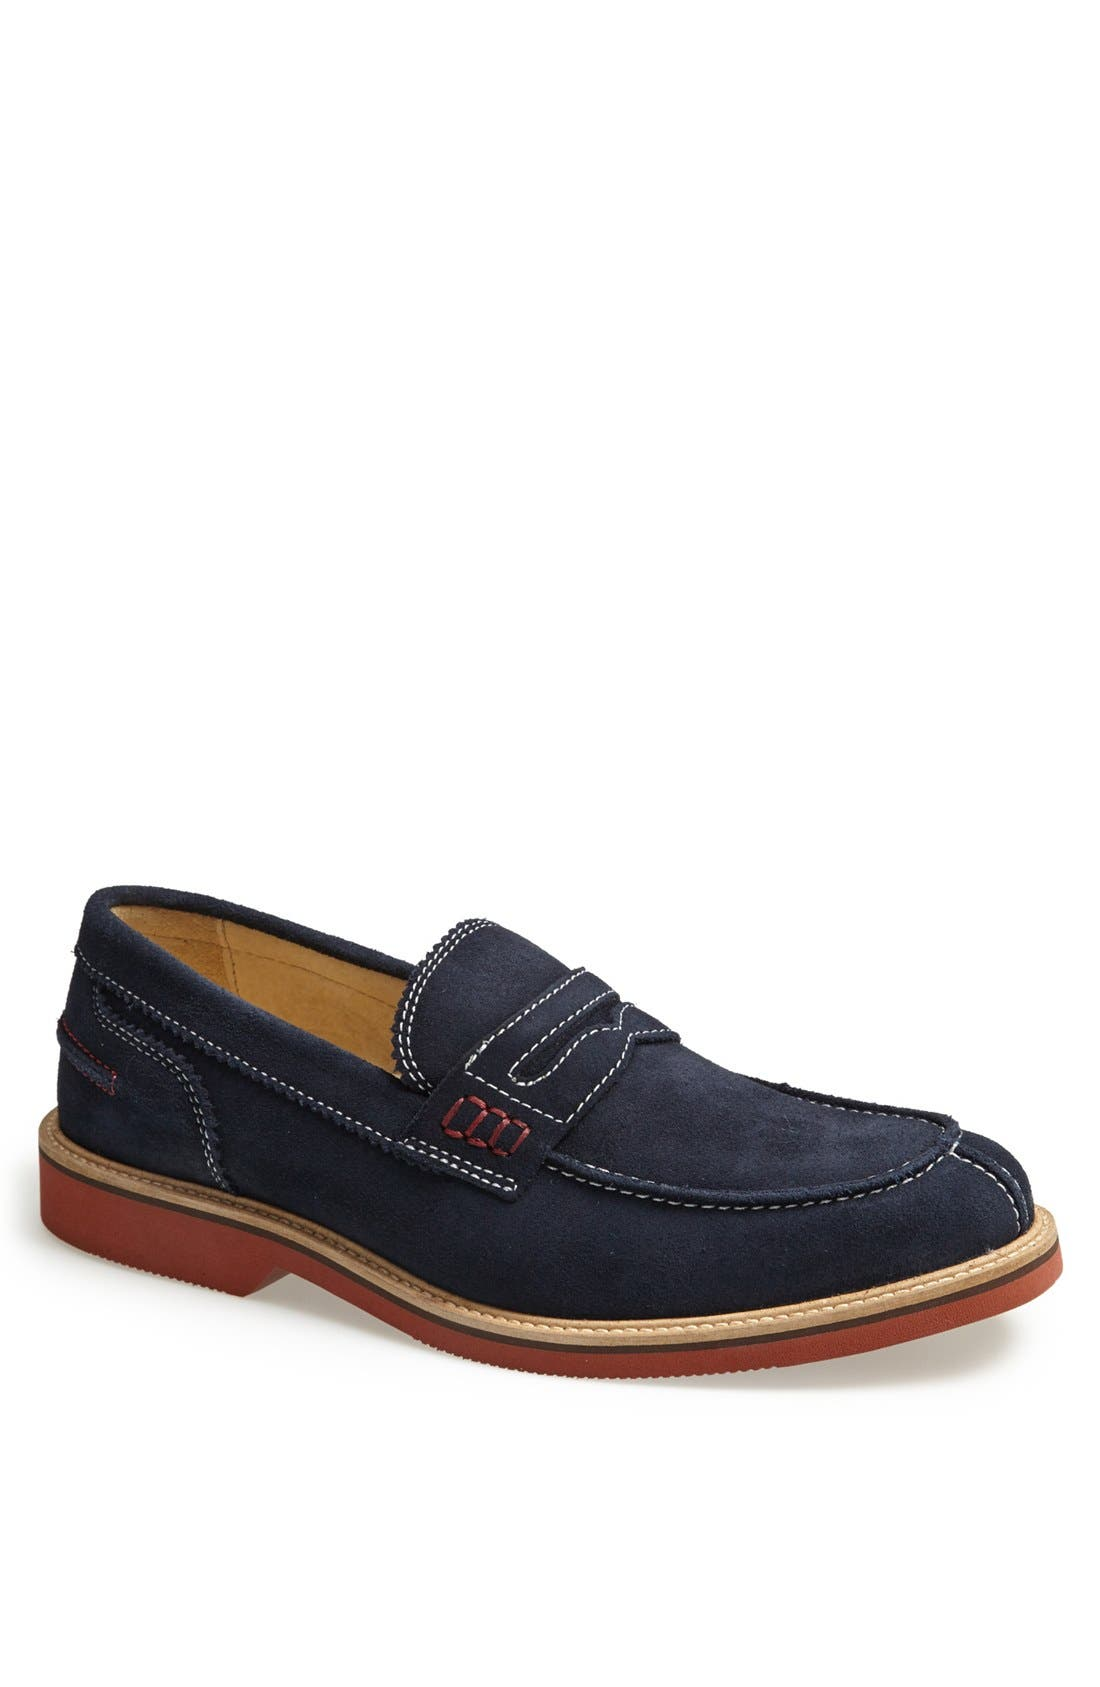 Main Image - 1901 'Colby' Penny Loafer (Men)